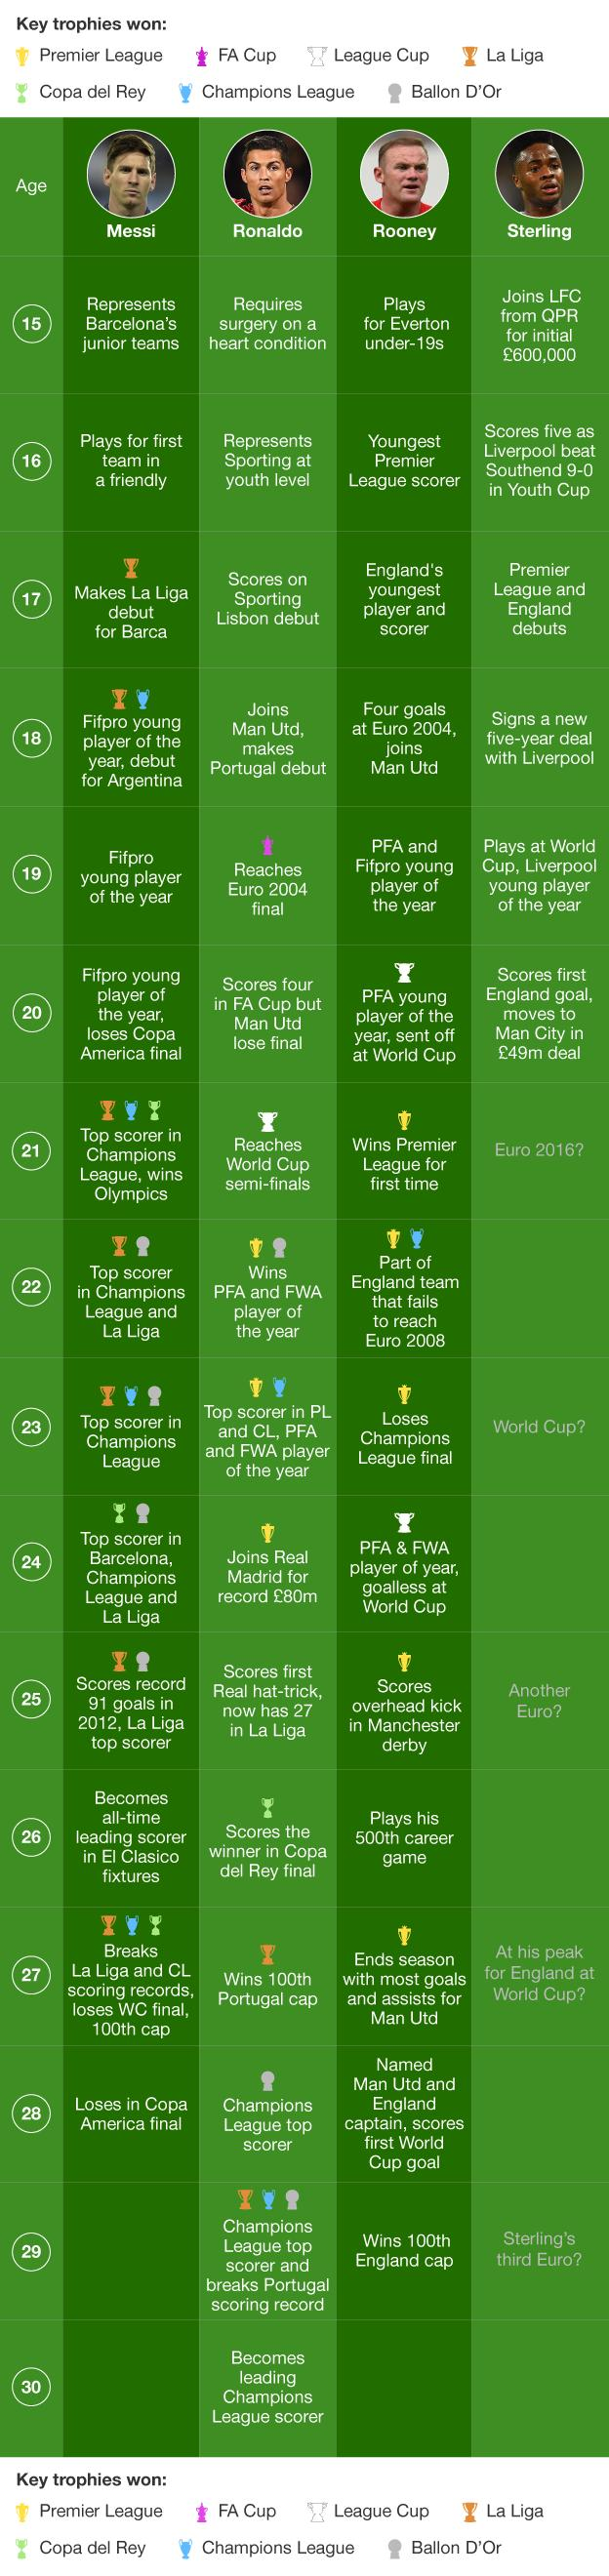 Raheem Sterling's achievements compared to Wayne Rooney, Lionel Messi and Cristiano Ronaldo